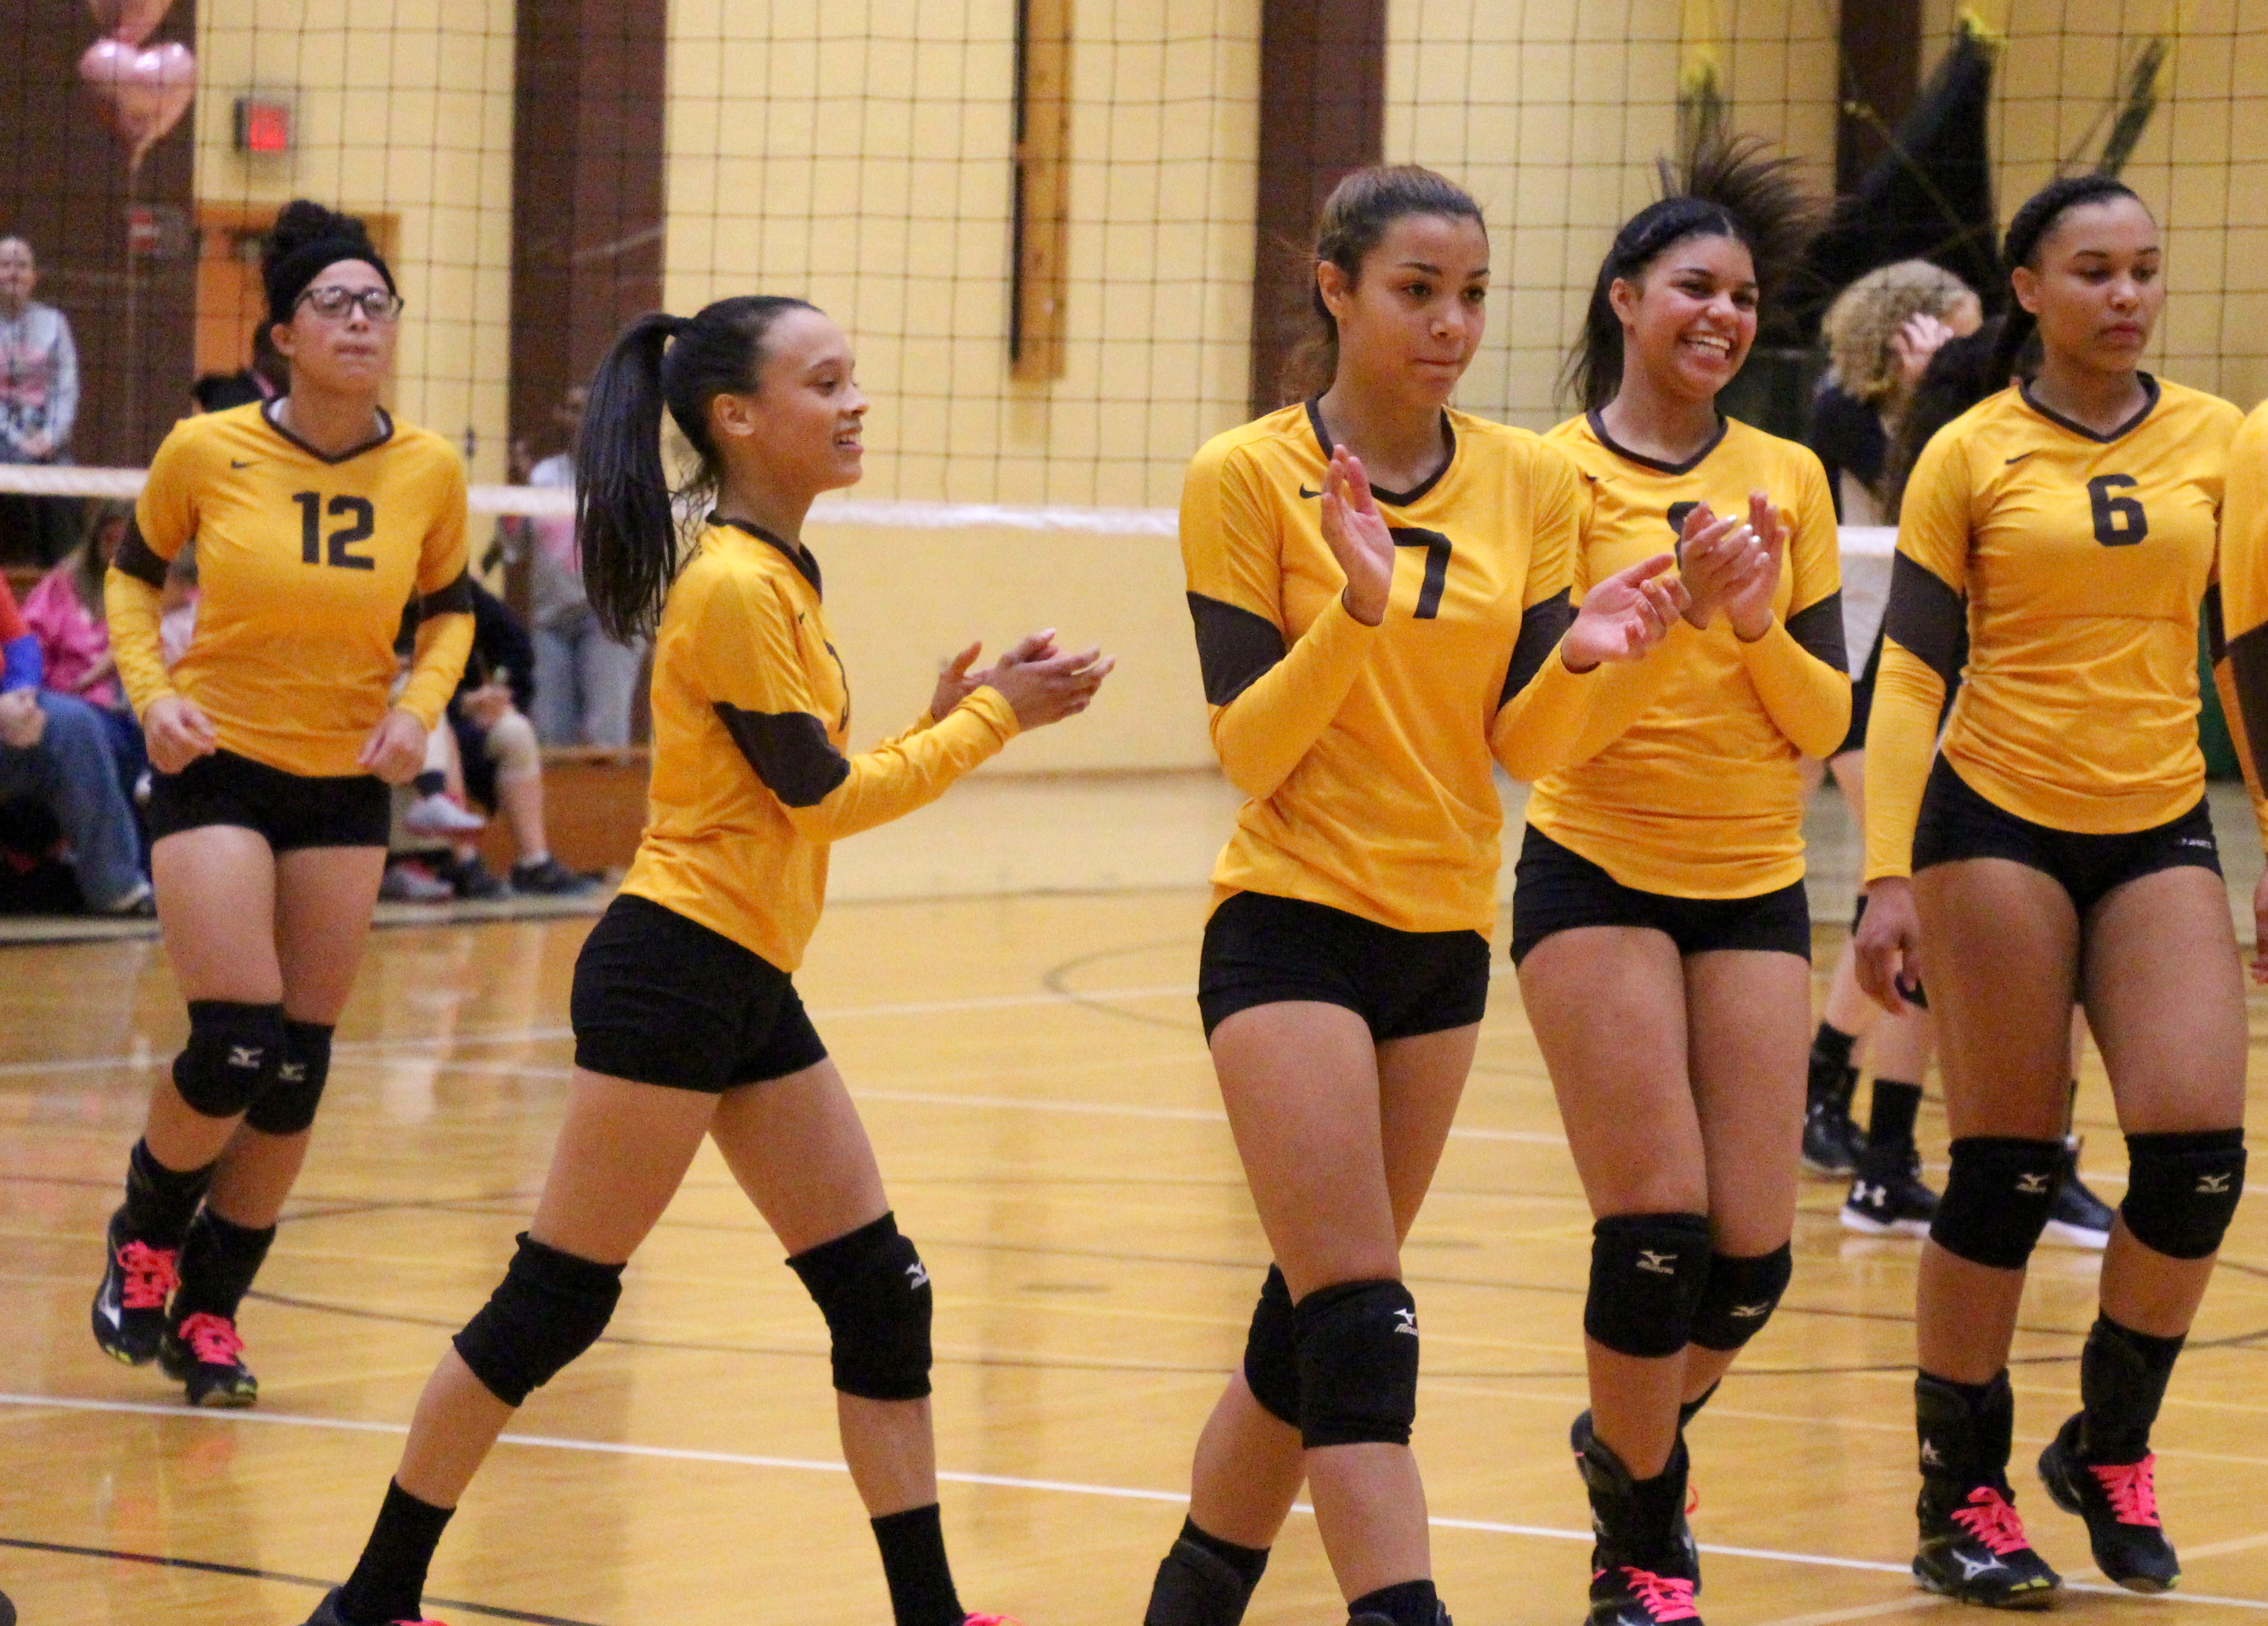 Milton Hershey School volleyball players recently were named to the Mid-Penn Colonial Division first team all-conference